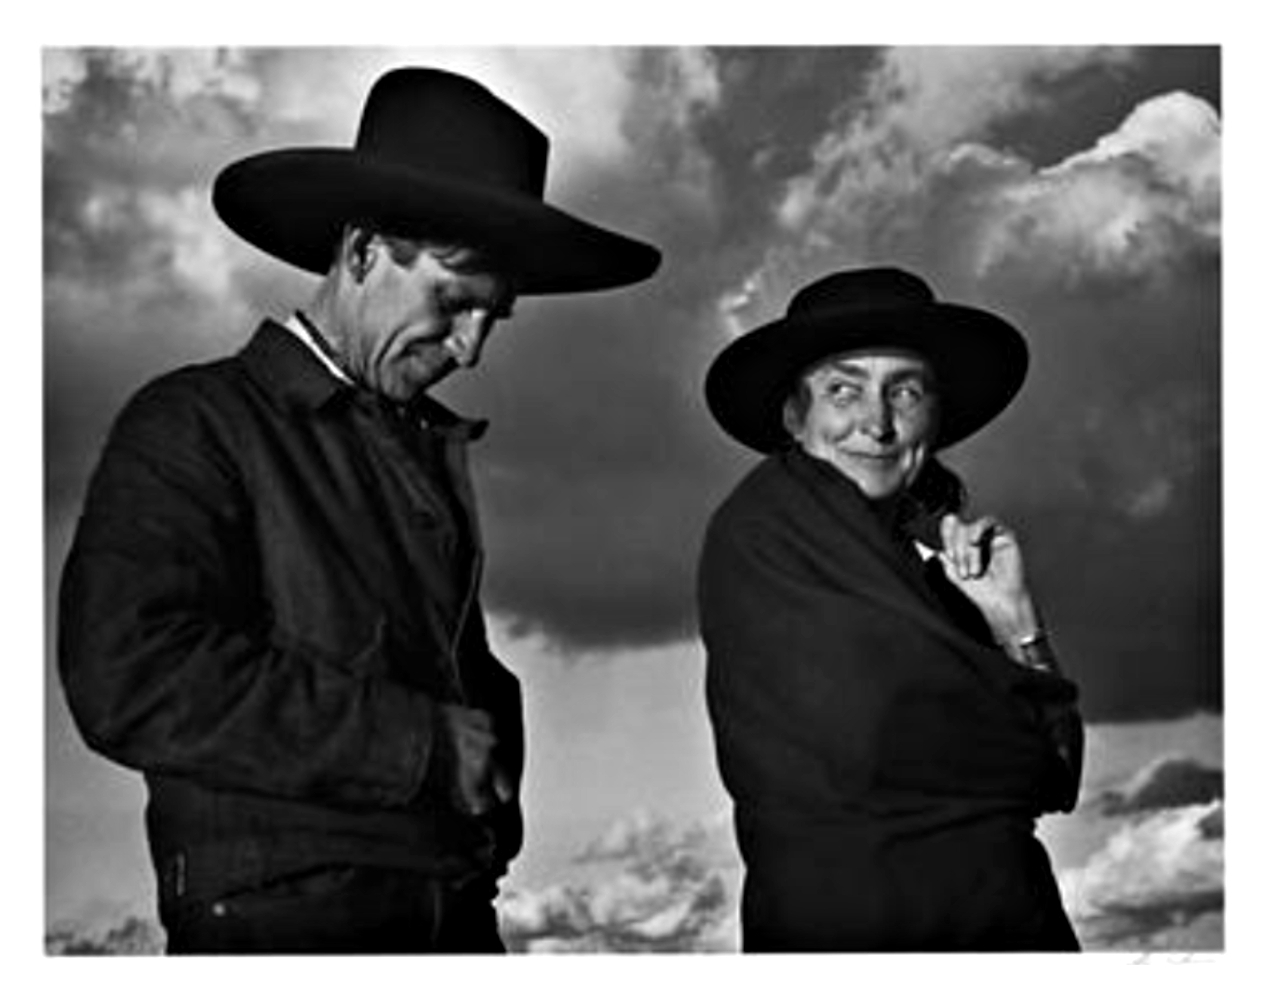 Georgia OKeeffe and Orville Cox Canyon de Chelly National Monument Arizona 1937